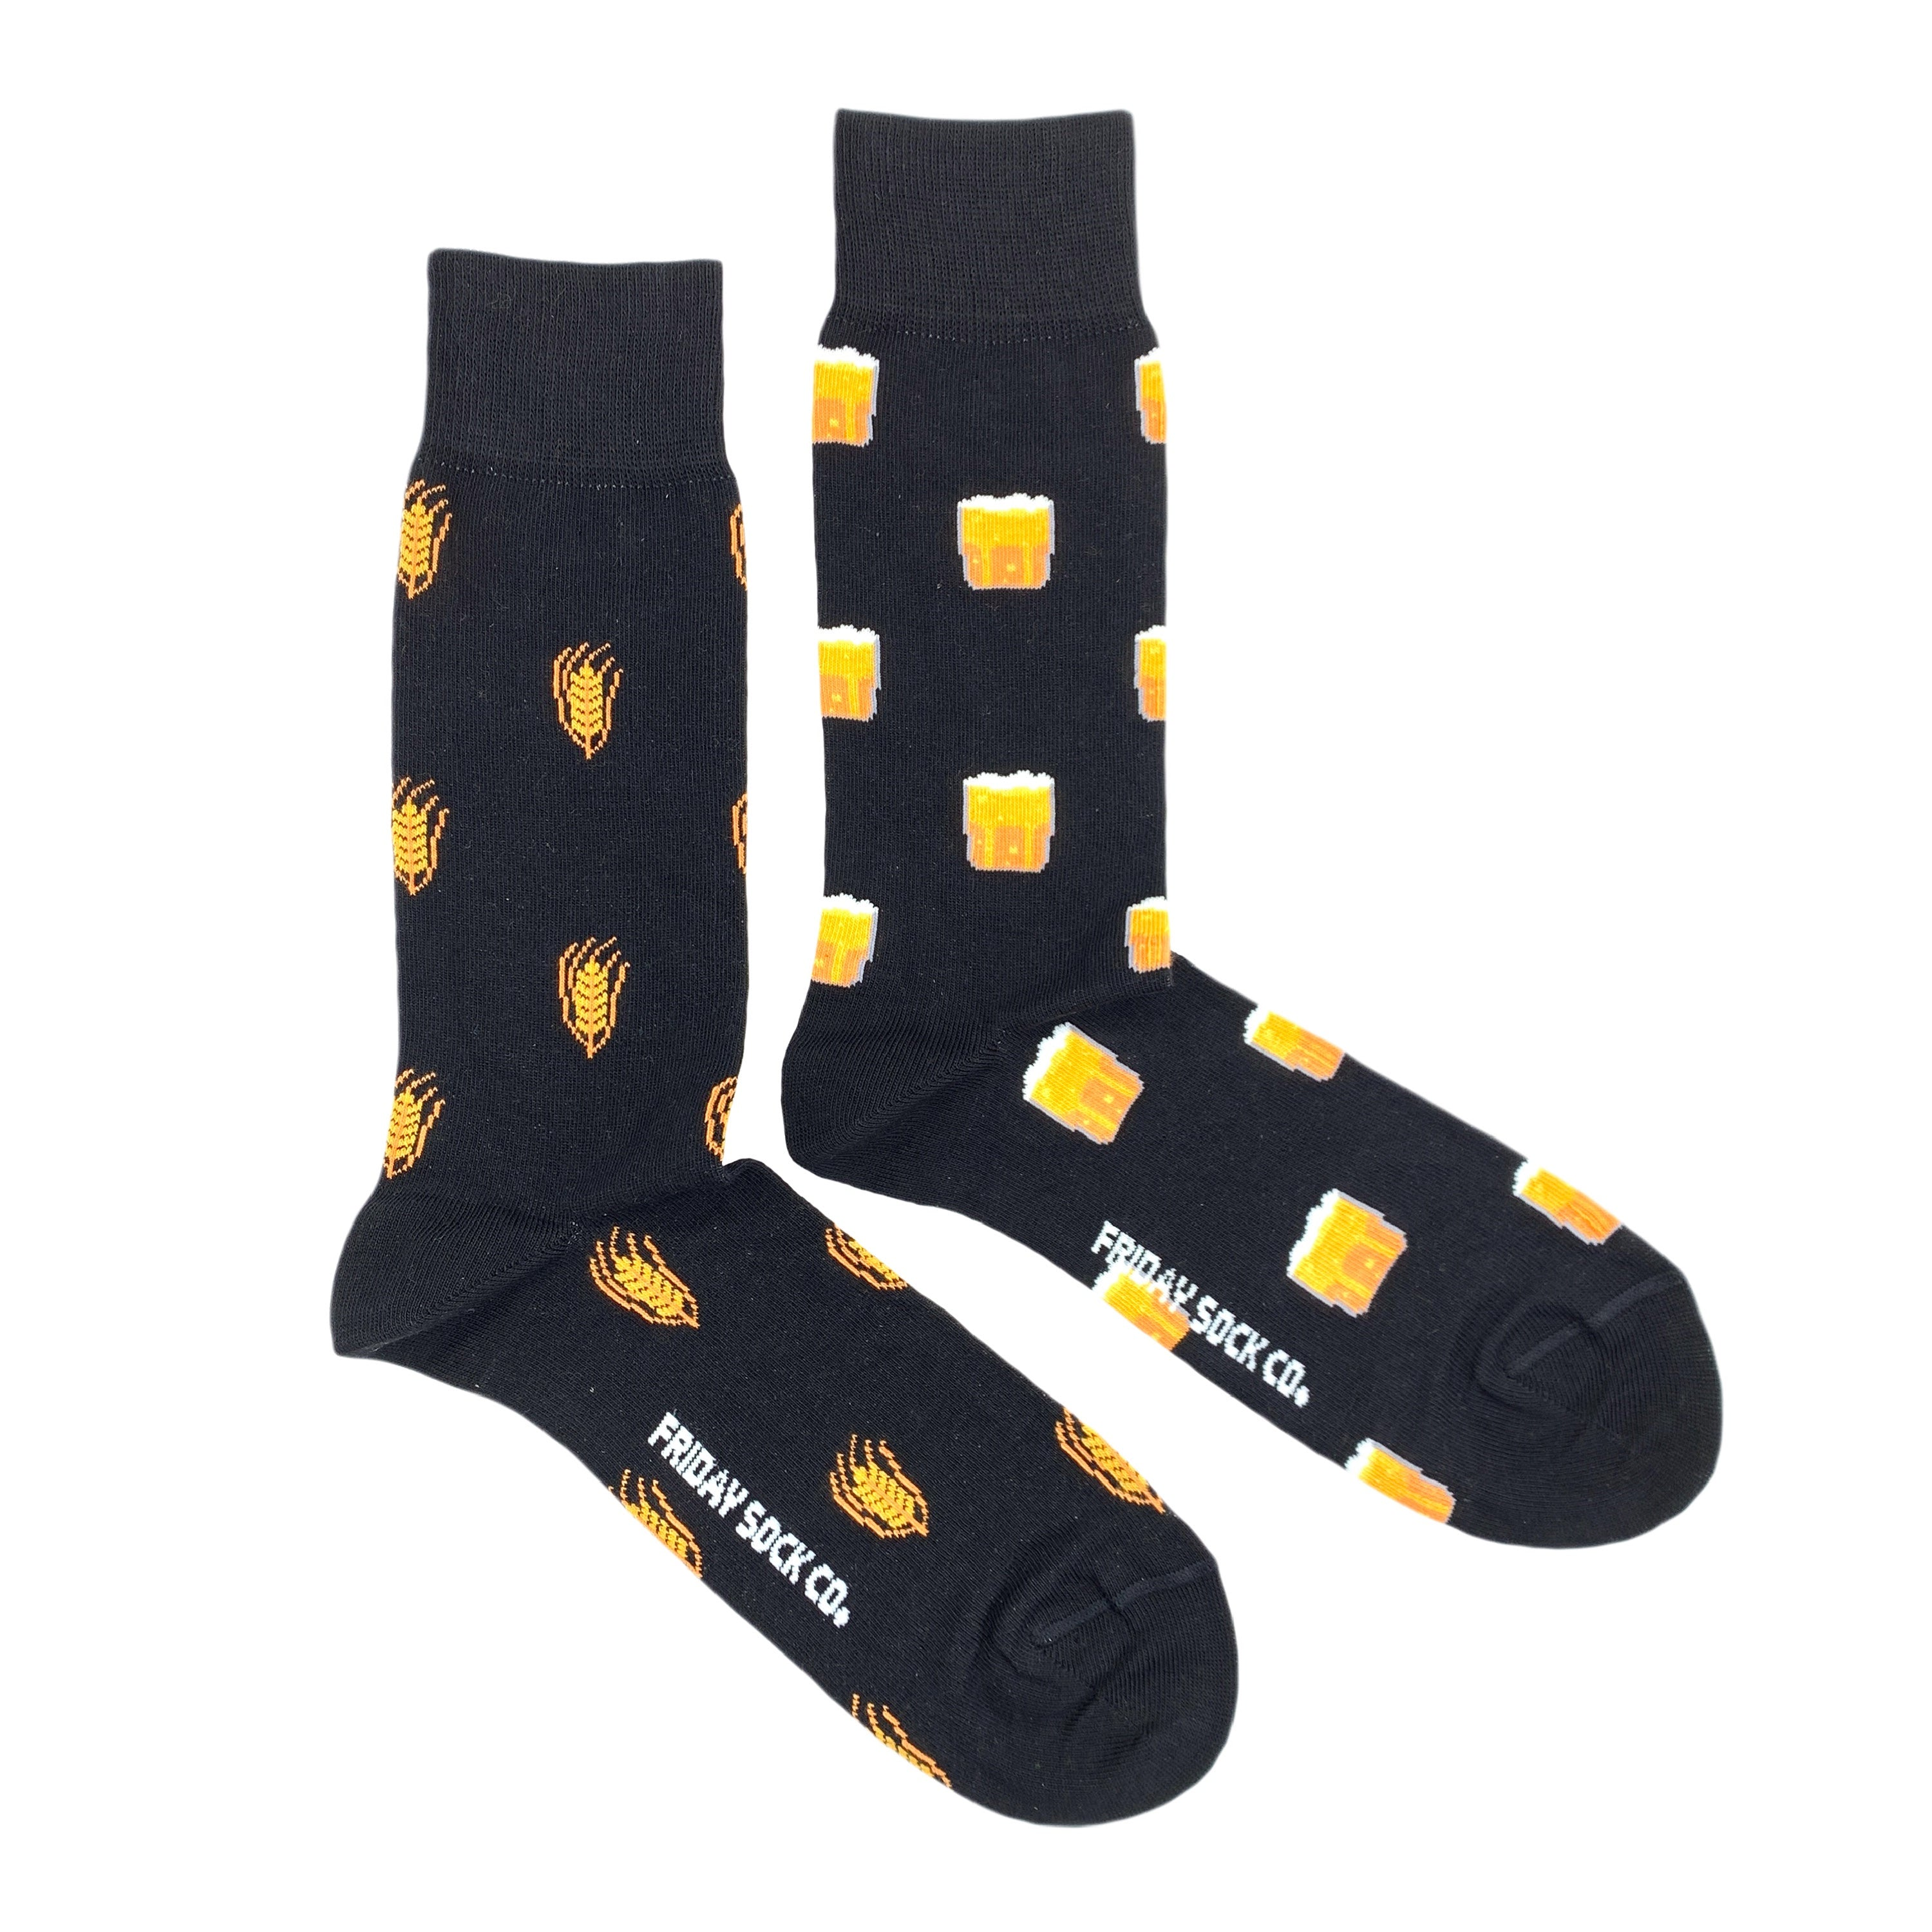 Friday Socks | Men's Beer & Barley Black Socks